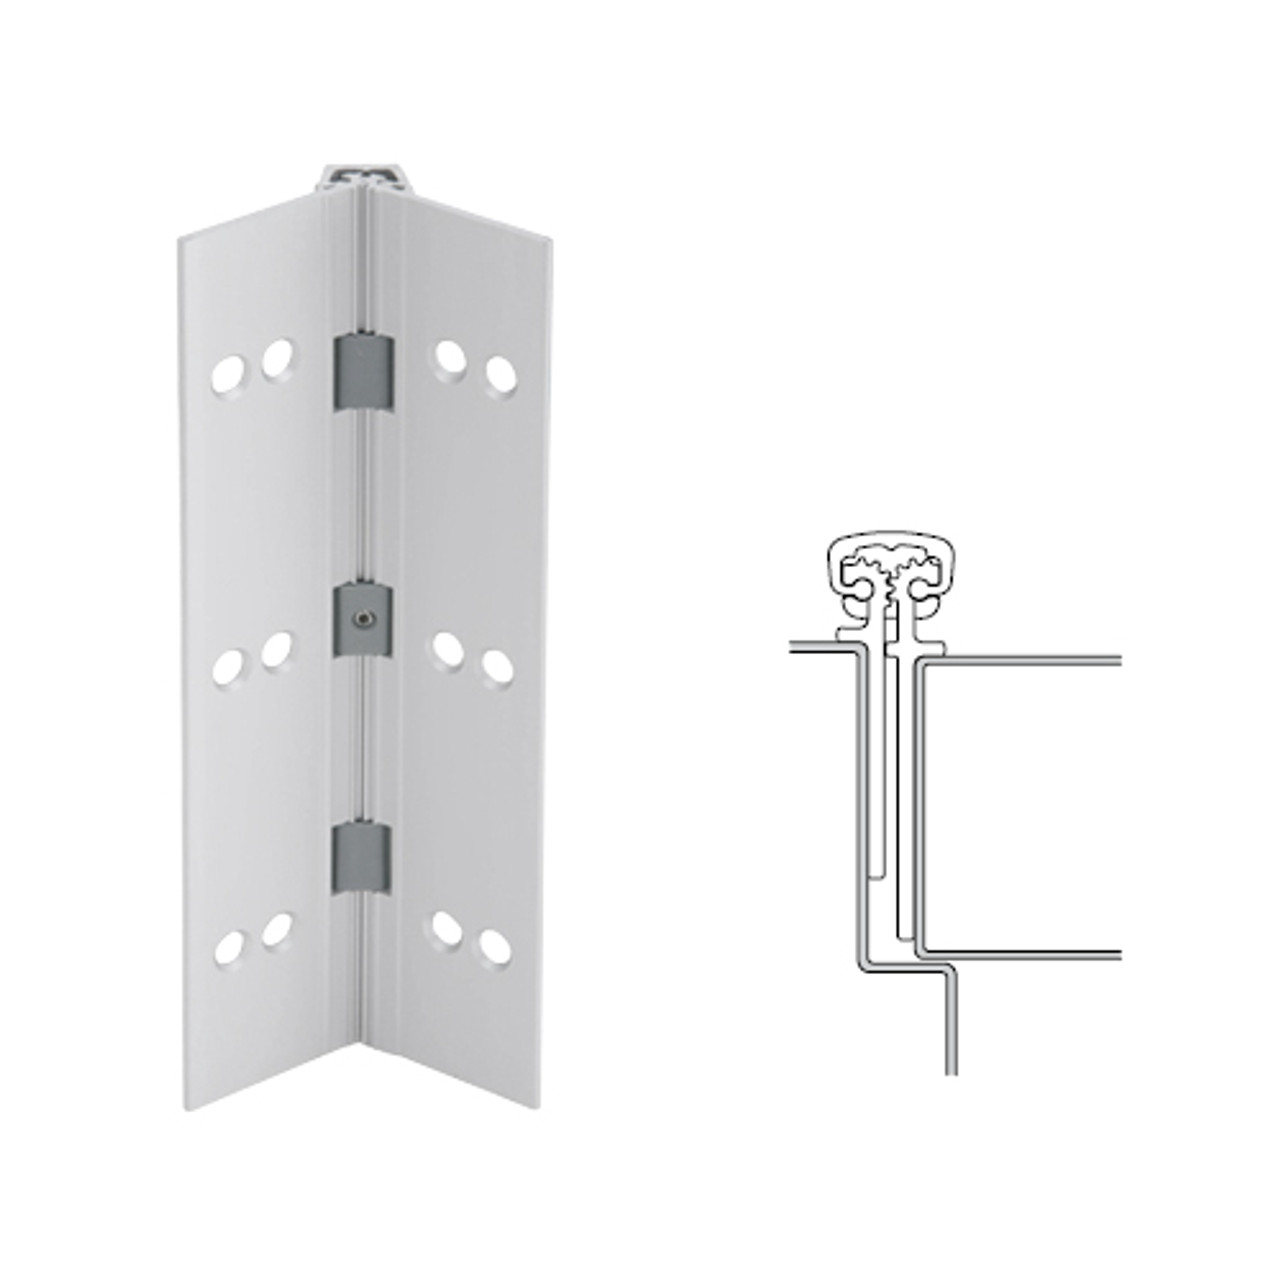 026XY-US28-83-SECWDHM IVES Full Mortise Continuous Geared Hinges with Security Screws - Hex Pin Drive in Satin Aluminum